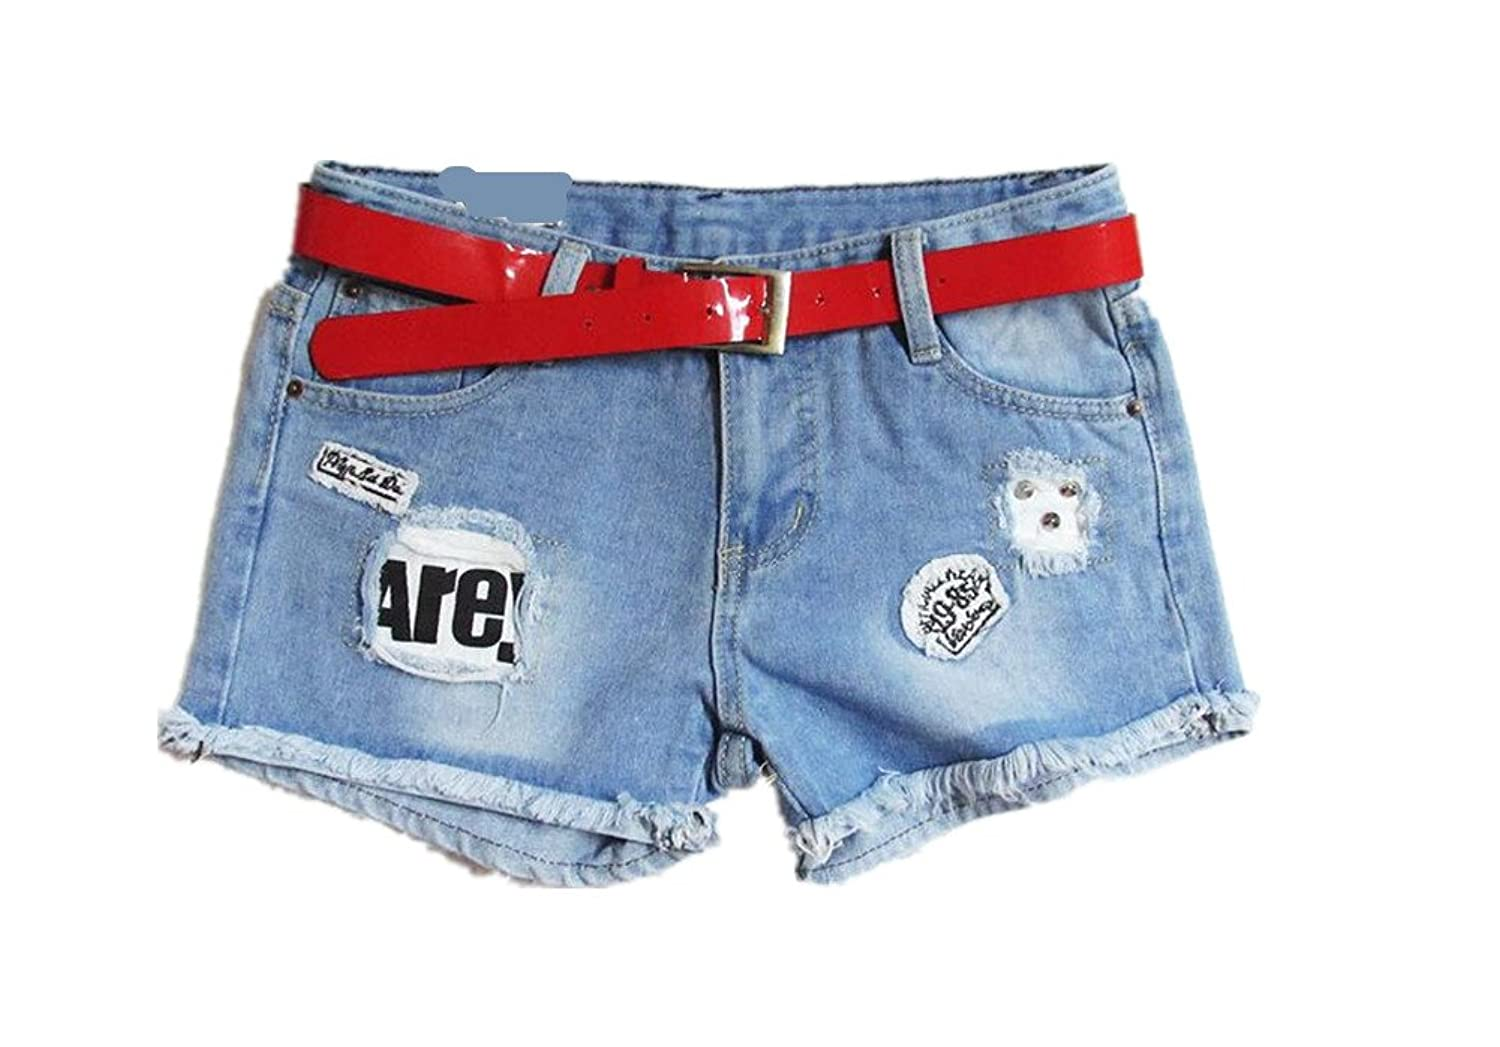 Lingswallow Women Blue Vintage Mid Waist Embroidered Denim Ripped Hole Jean Shorts